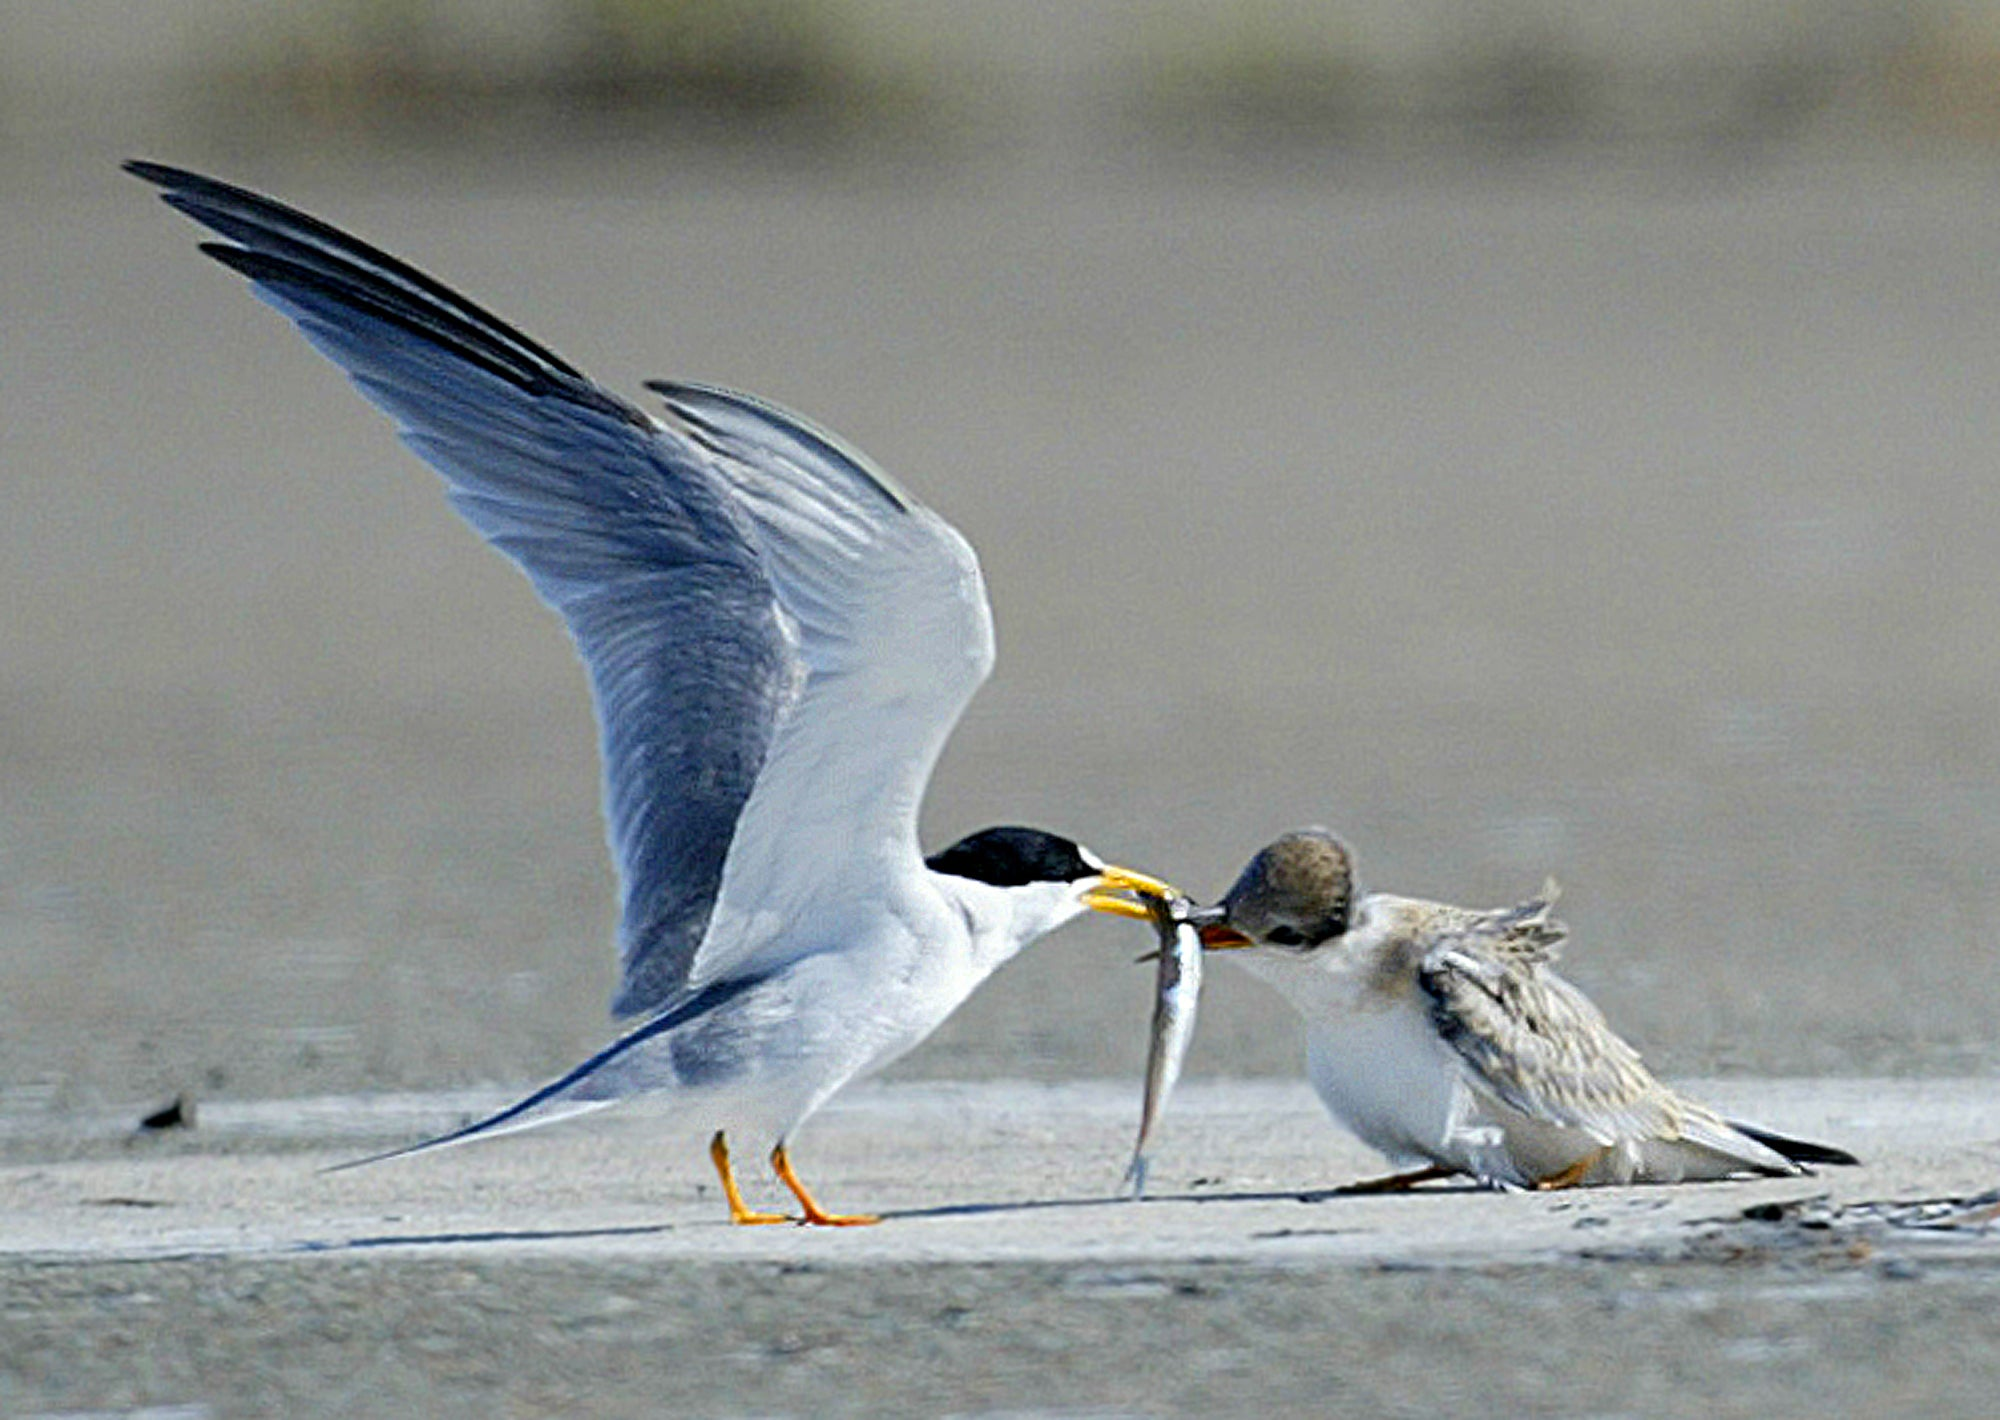 California least tern and fledgling. Photo taken by Aric Crabb.